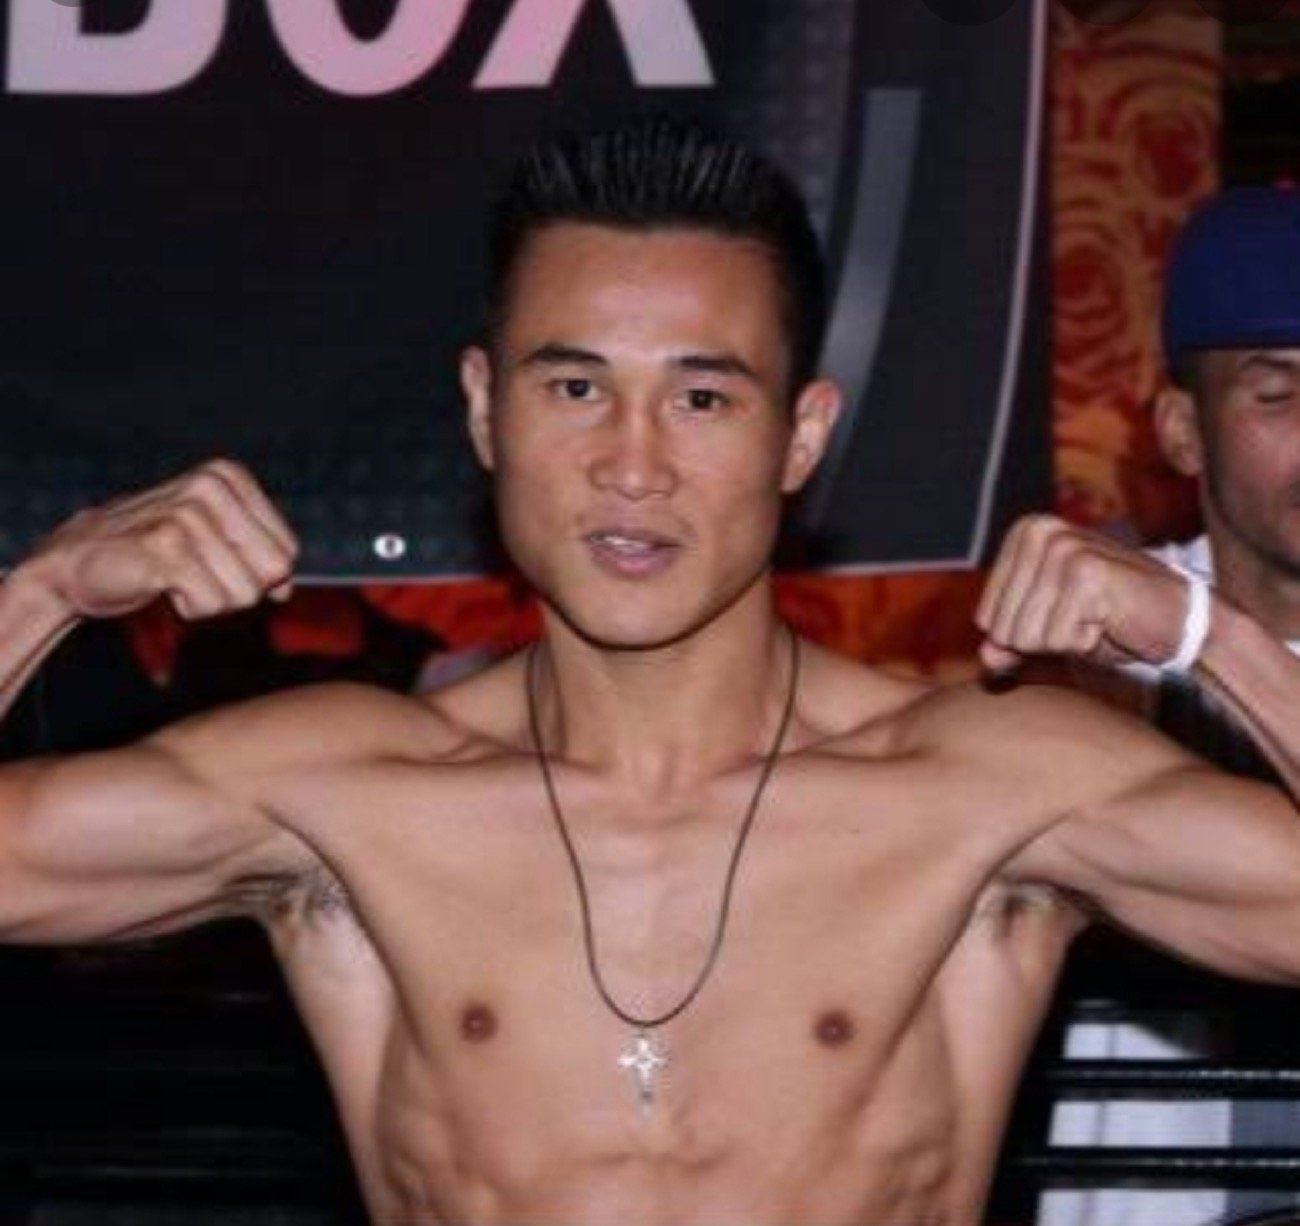 Dat Nguyen - The talk in boxing circles of Dat Nguyen making a comeback continues to gain momentum. The Vietnam born dynamo has not fought since February 2017, where he brutally knocked out unbeaten world title prospect Miguel Flores. But instead of securing a world title shot of his own, Dat Nguyen was dispatched to boxing's vast wilderness.